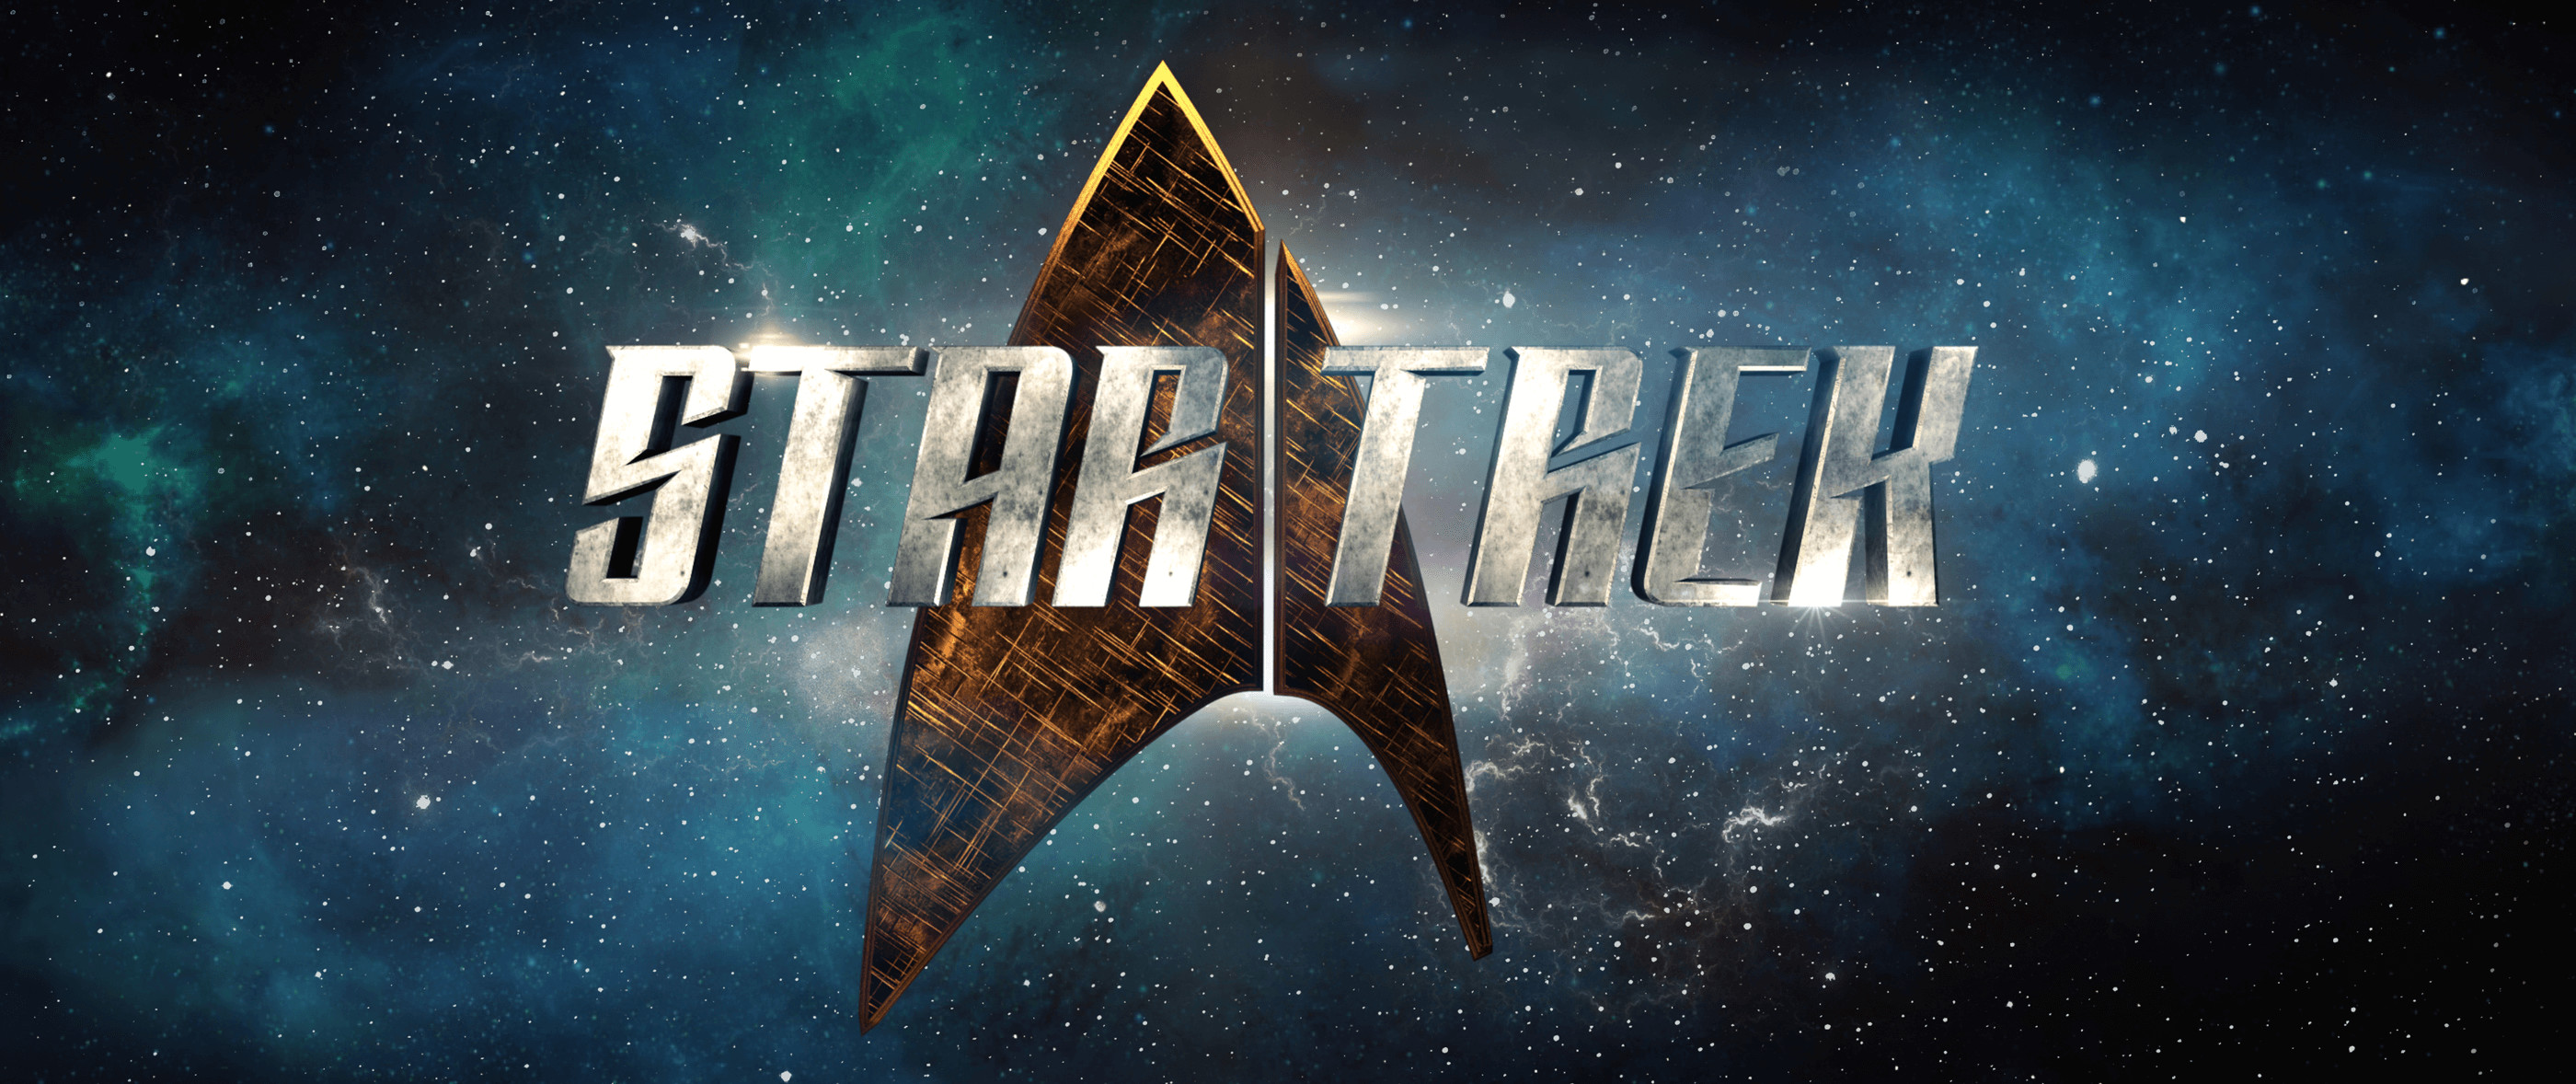 2800x1178 star trek wallpaper hd